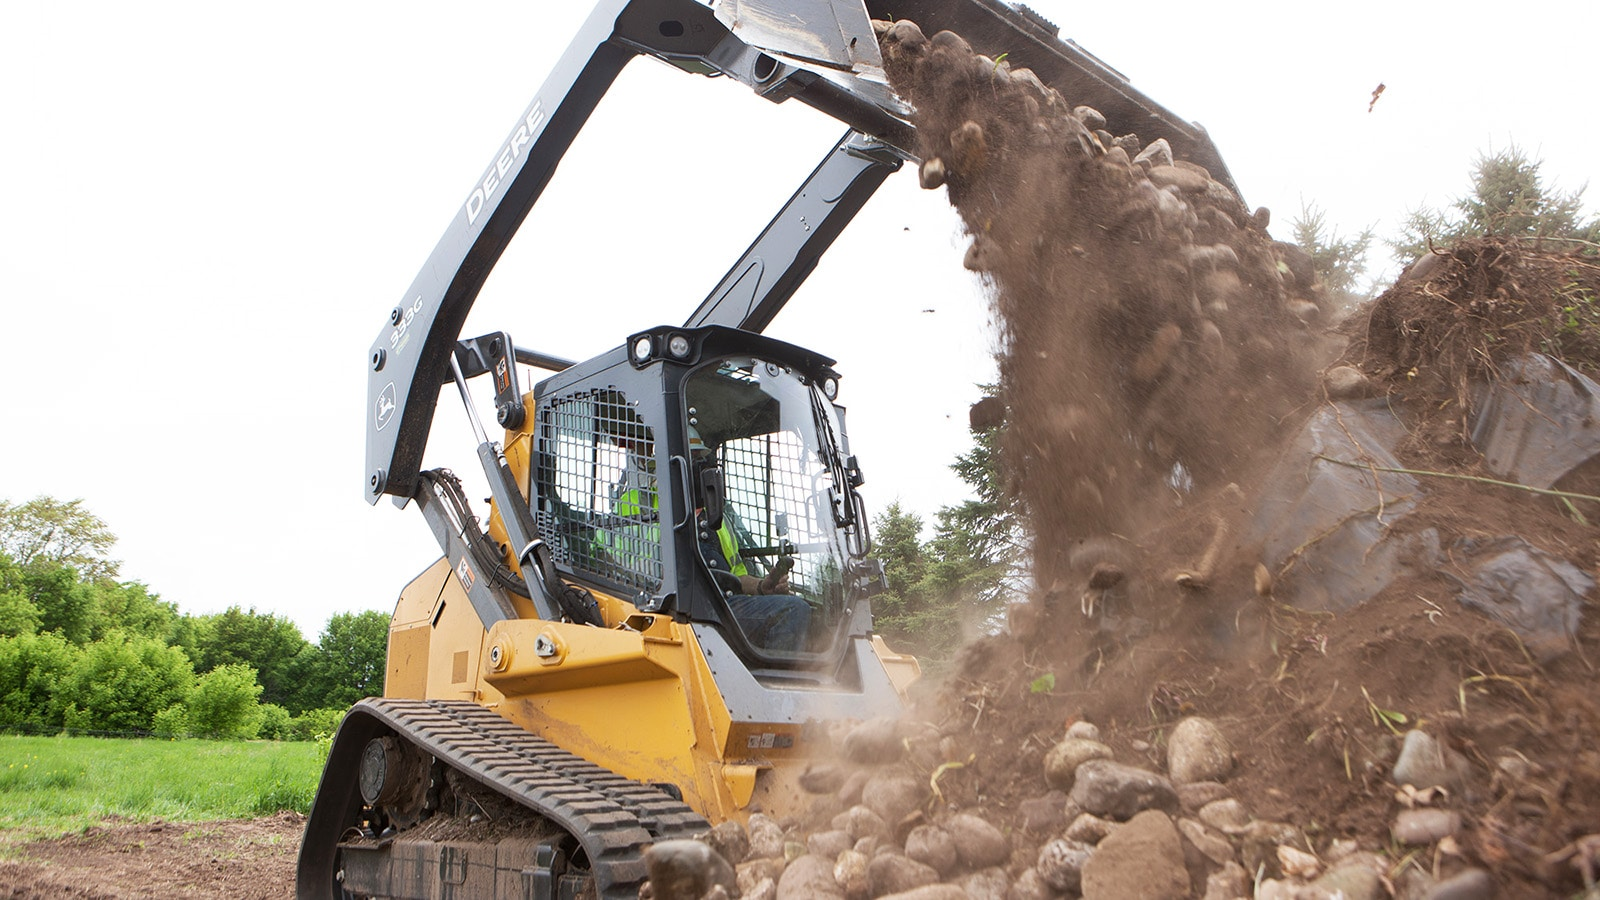 333G Compact track loader unloads a bucket of dirt